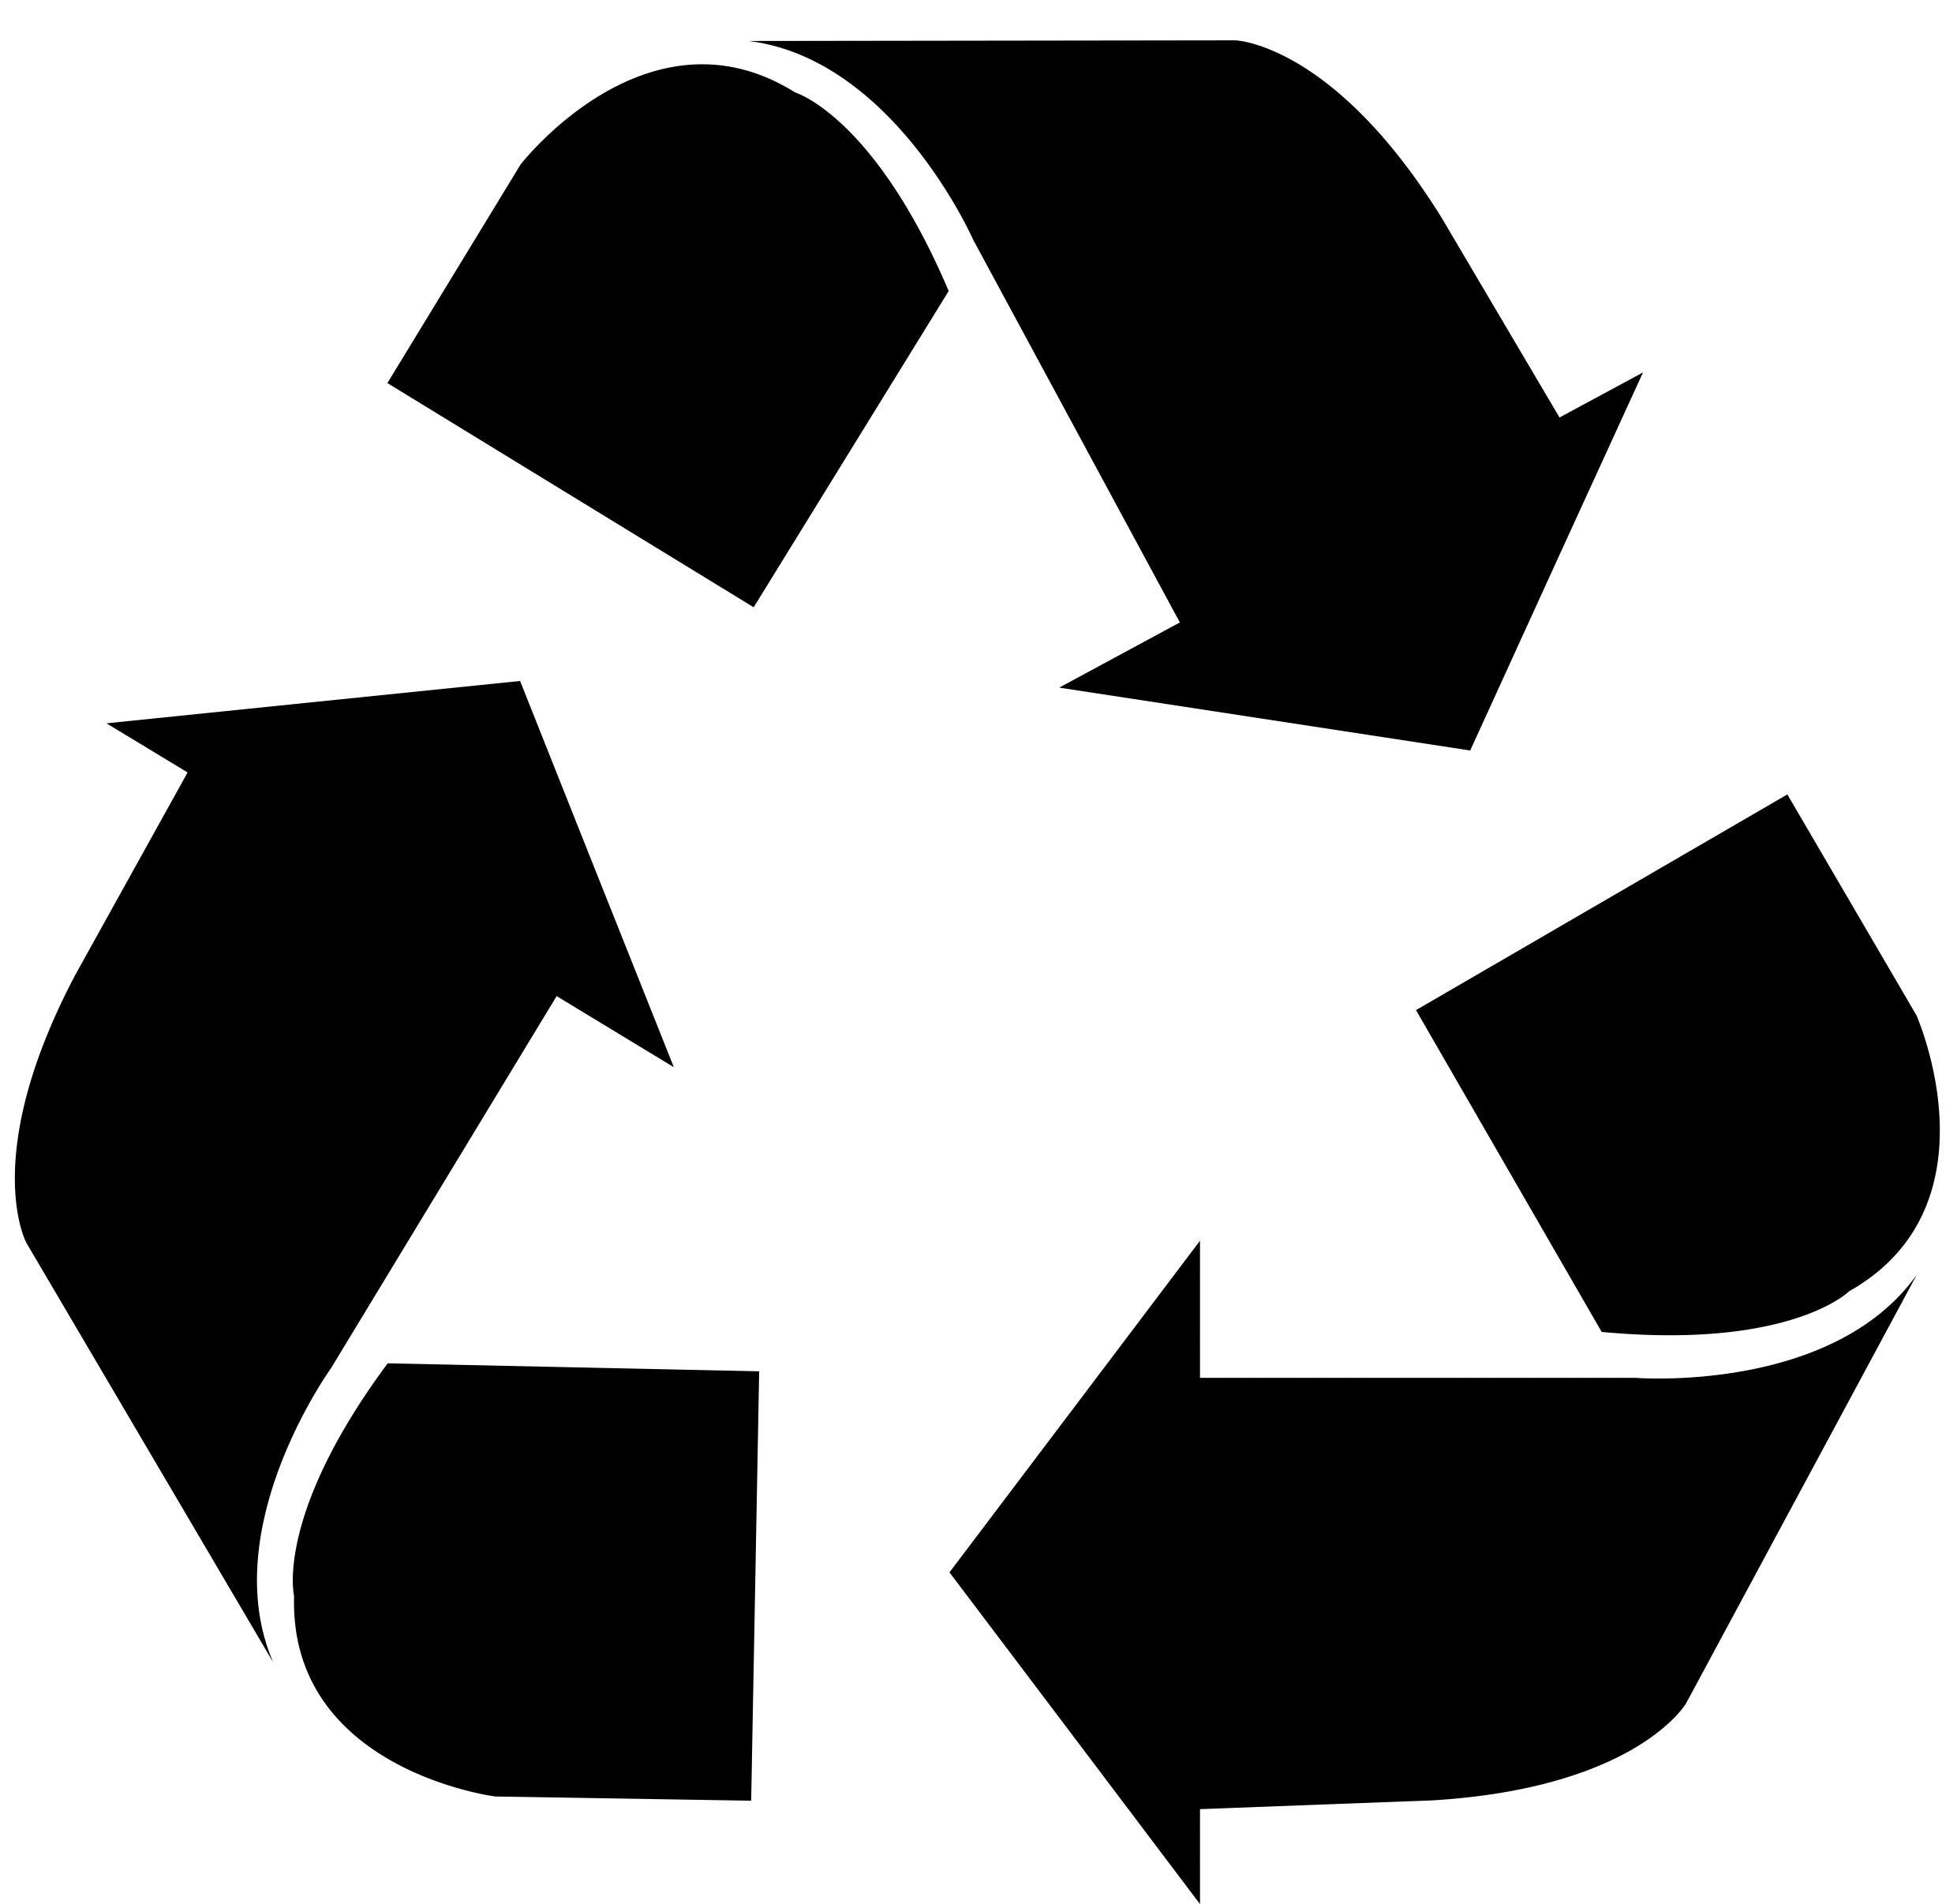 Recyclable pe logo vector (. Eps) free download.